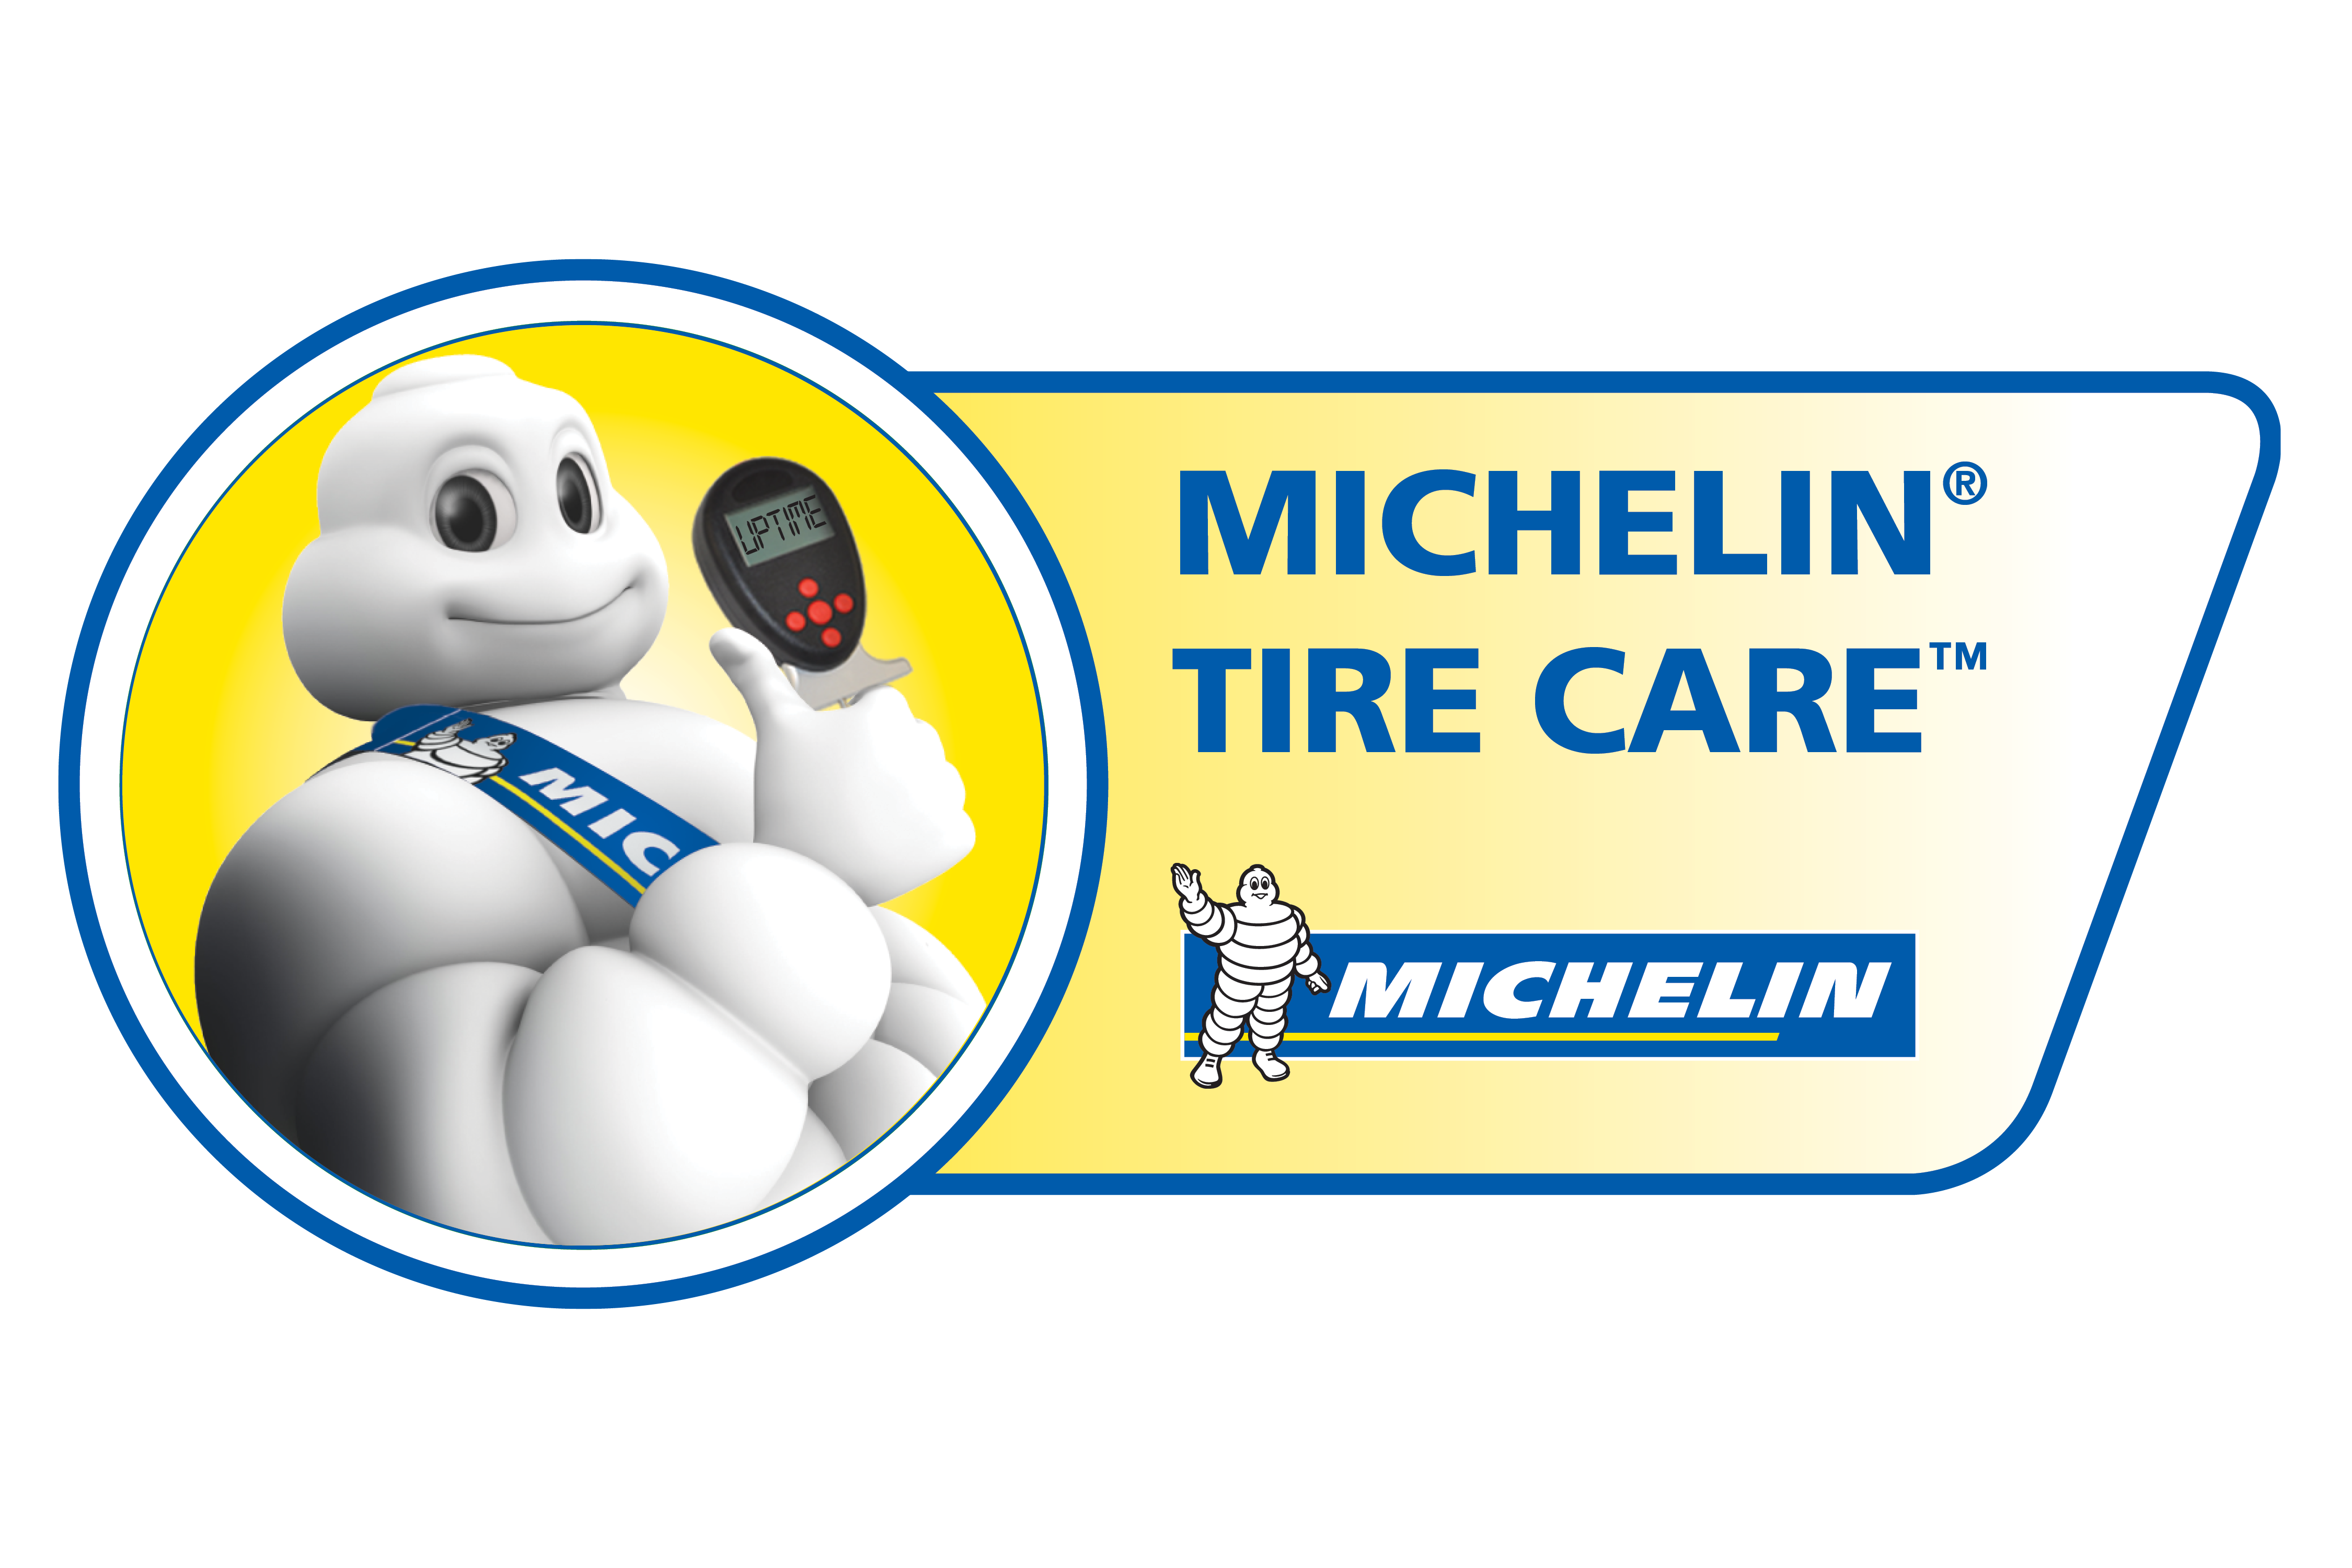 analysis of a michelin commercial Industry analysis and market report on commercial vehicle tyre is a syndicated market report, published as global commercial vehicle tyre market insights, forecast to 2025 it is complete research study and industry analysis of commercial vehicle tyre market, to understand, market demand, growth, trends analysis and factor influencing market.